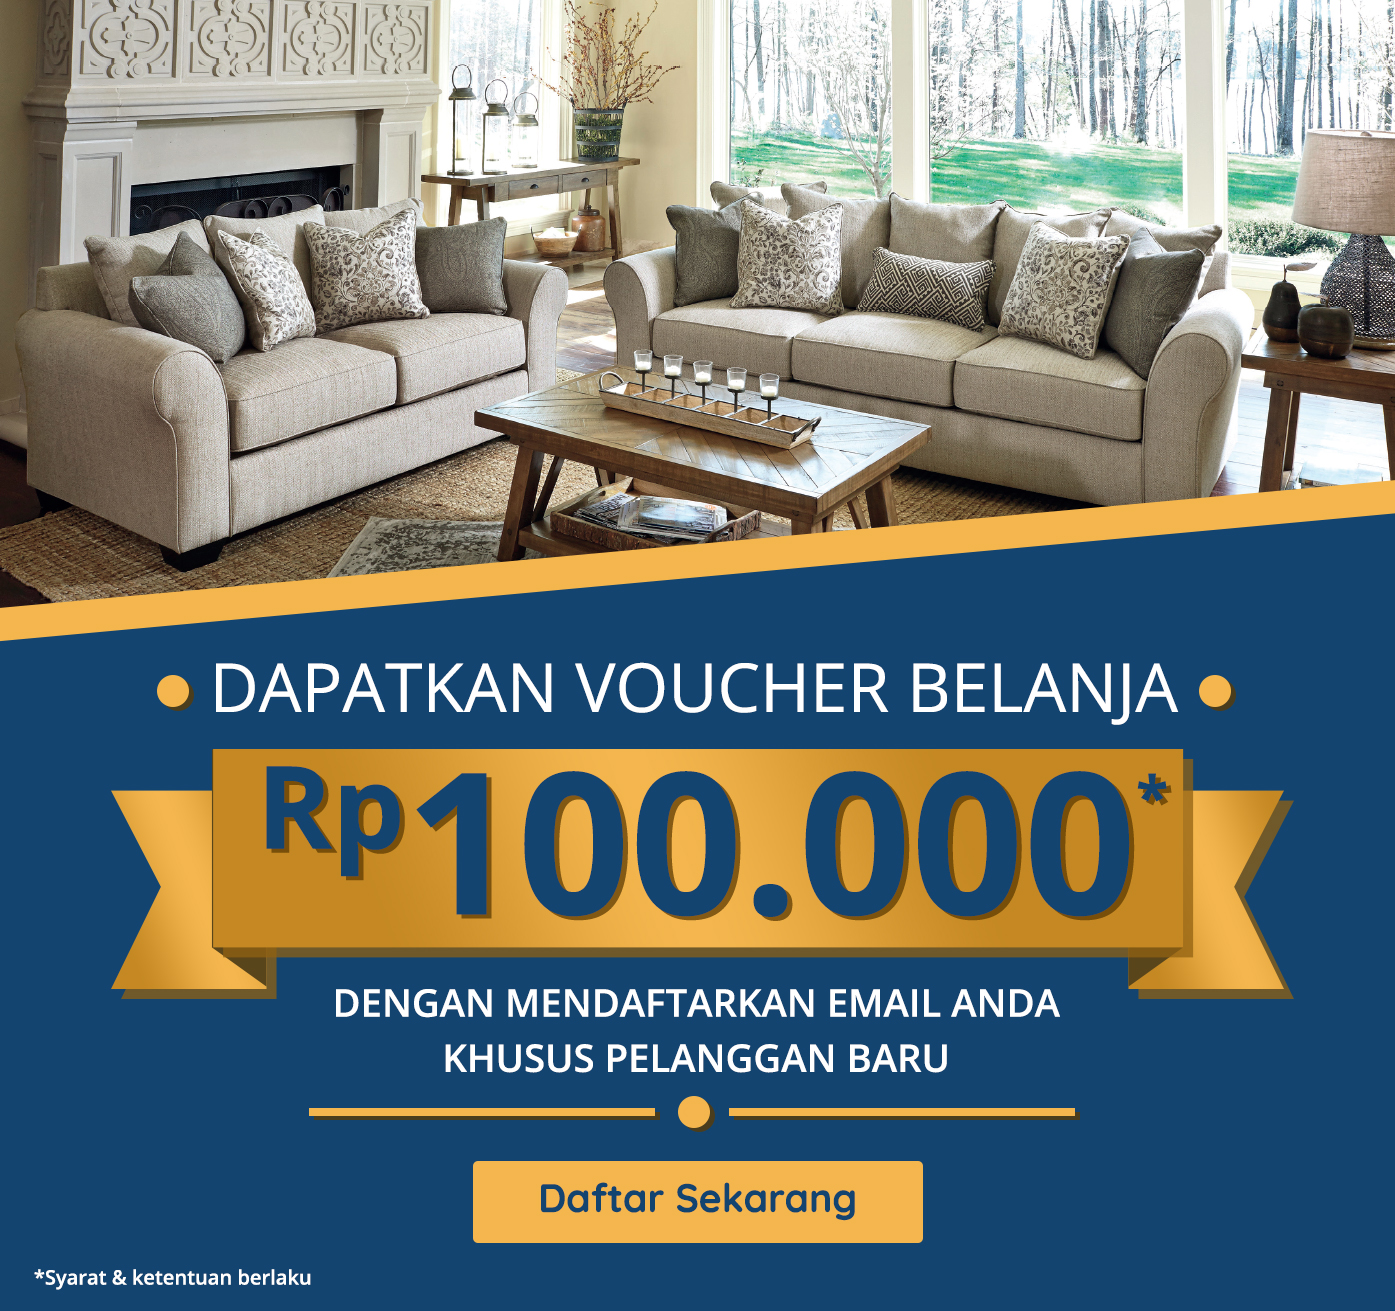 Informa official store toko furniture online no 1 di indonesia